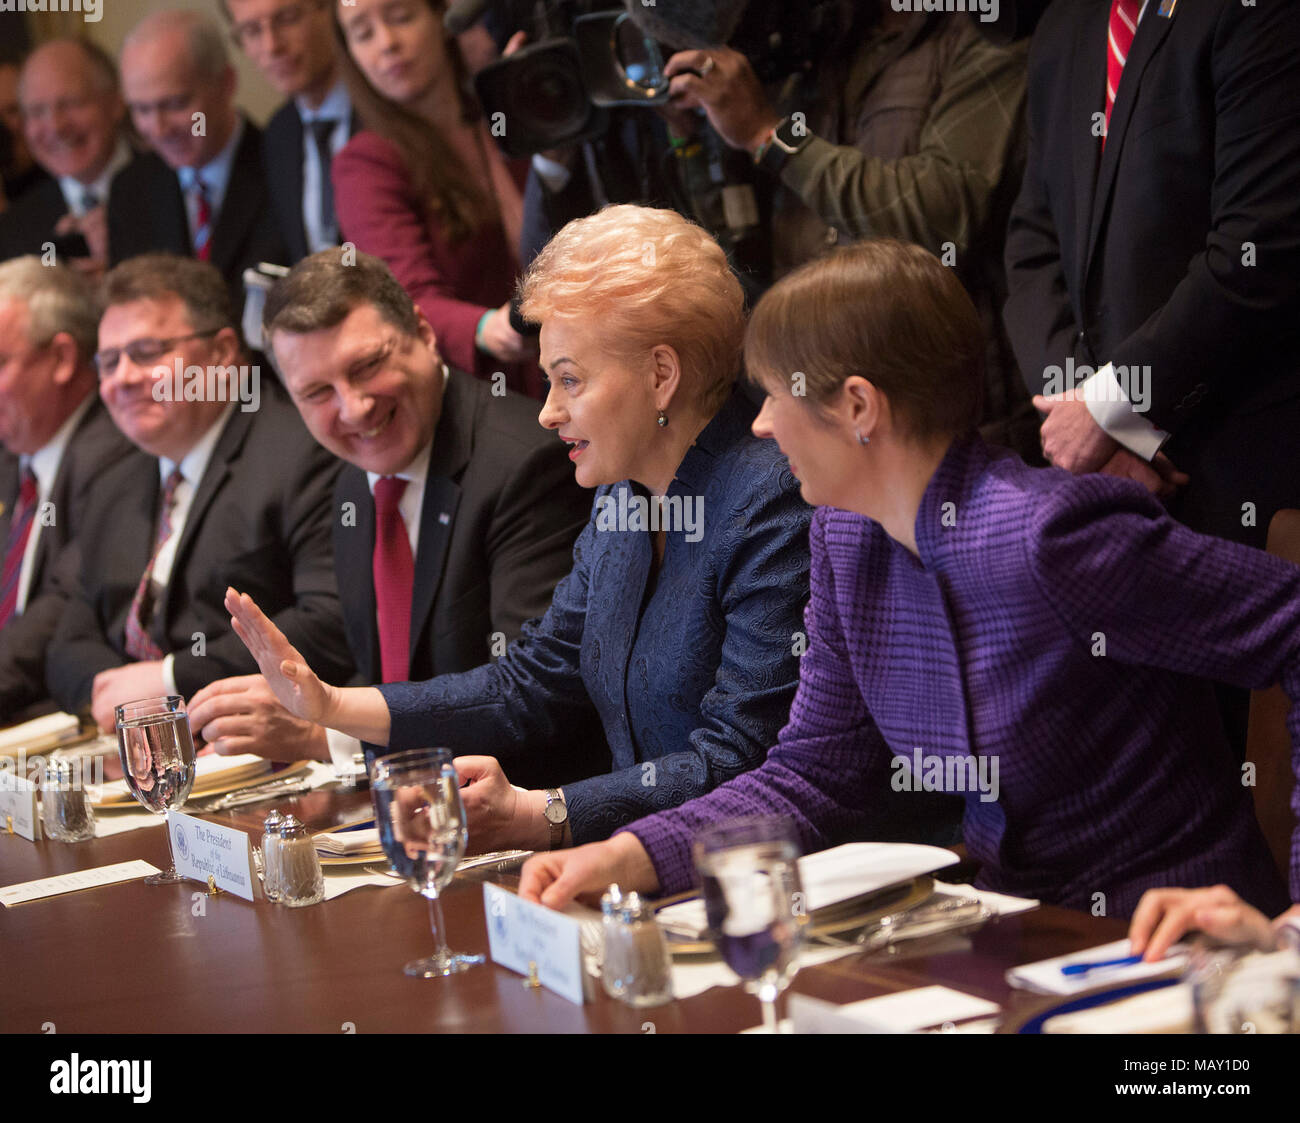 Washington, USA. 03rd Apr, 2018. Dalia Grybauskaite, President of Lithuania (2nd R) participates in a meeting with Kersti Kaljulaid (R), President of Estonia and President Raimonds Vejonis of Latvia at The White House in Washington, DC, April 3, 2018. - NO WIRE SERVICE - Credit: Chris Kleponis/Consolidated/dpa/Alamy Live News Stock Photo